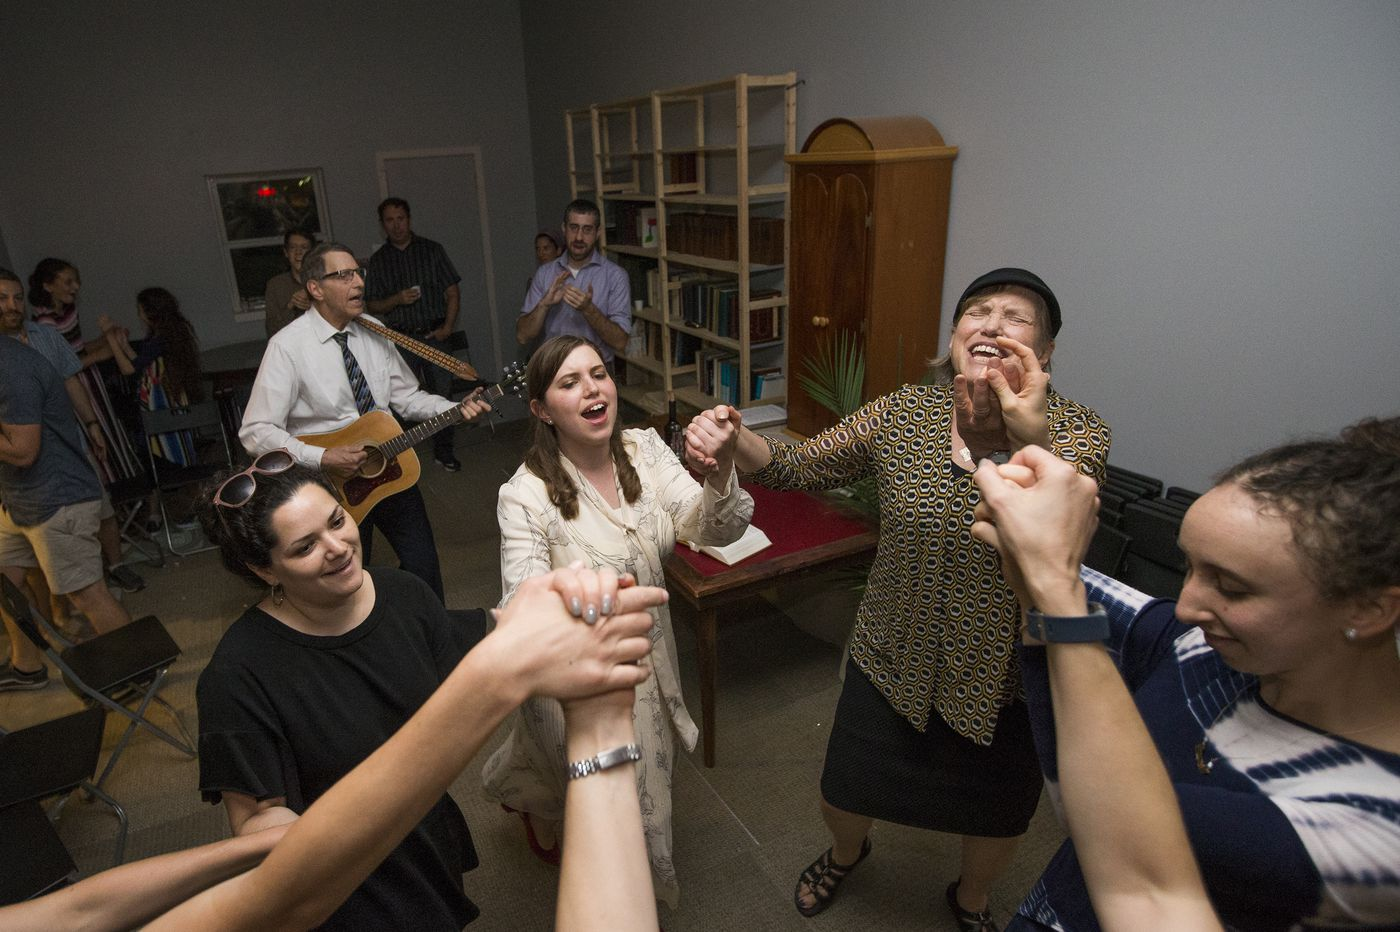 South Philly's historic Jewish community is growing. She opened a new synagogue to serve it.